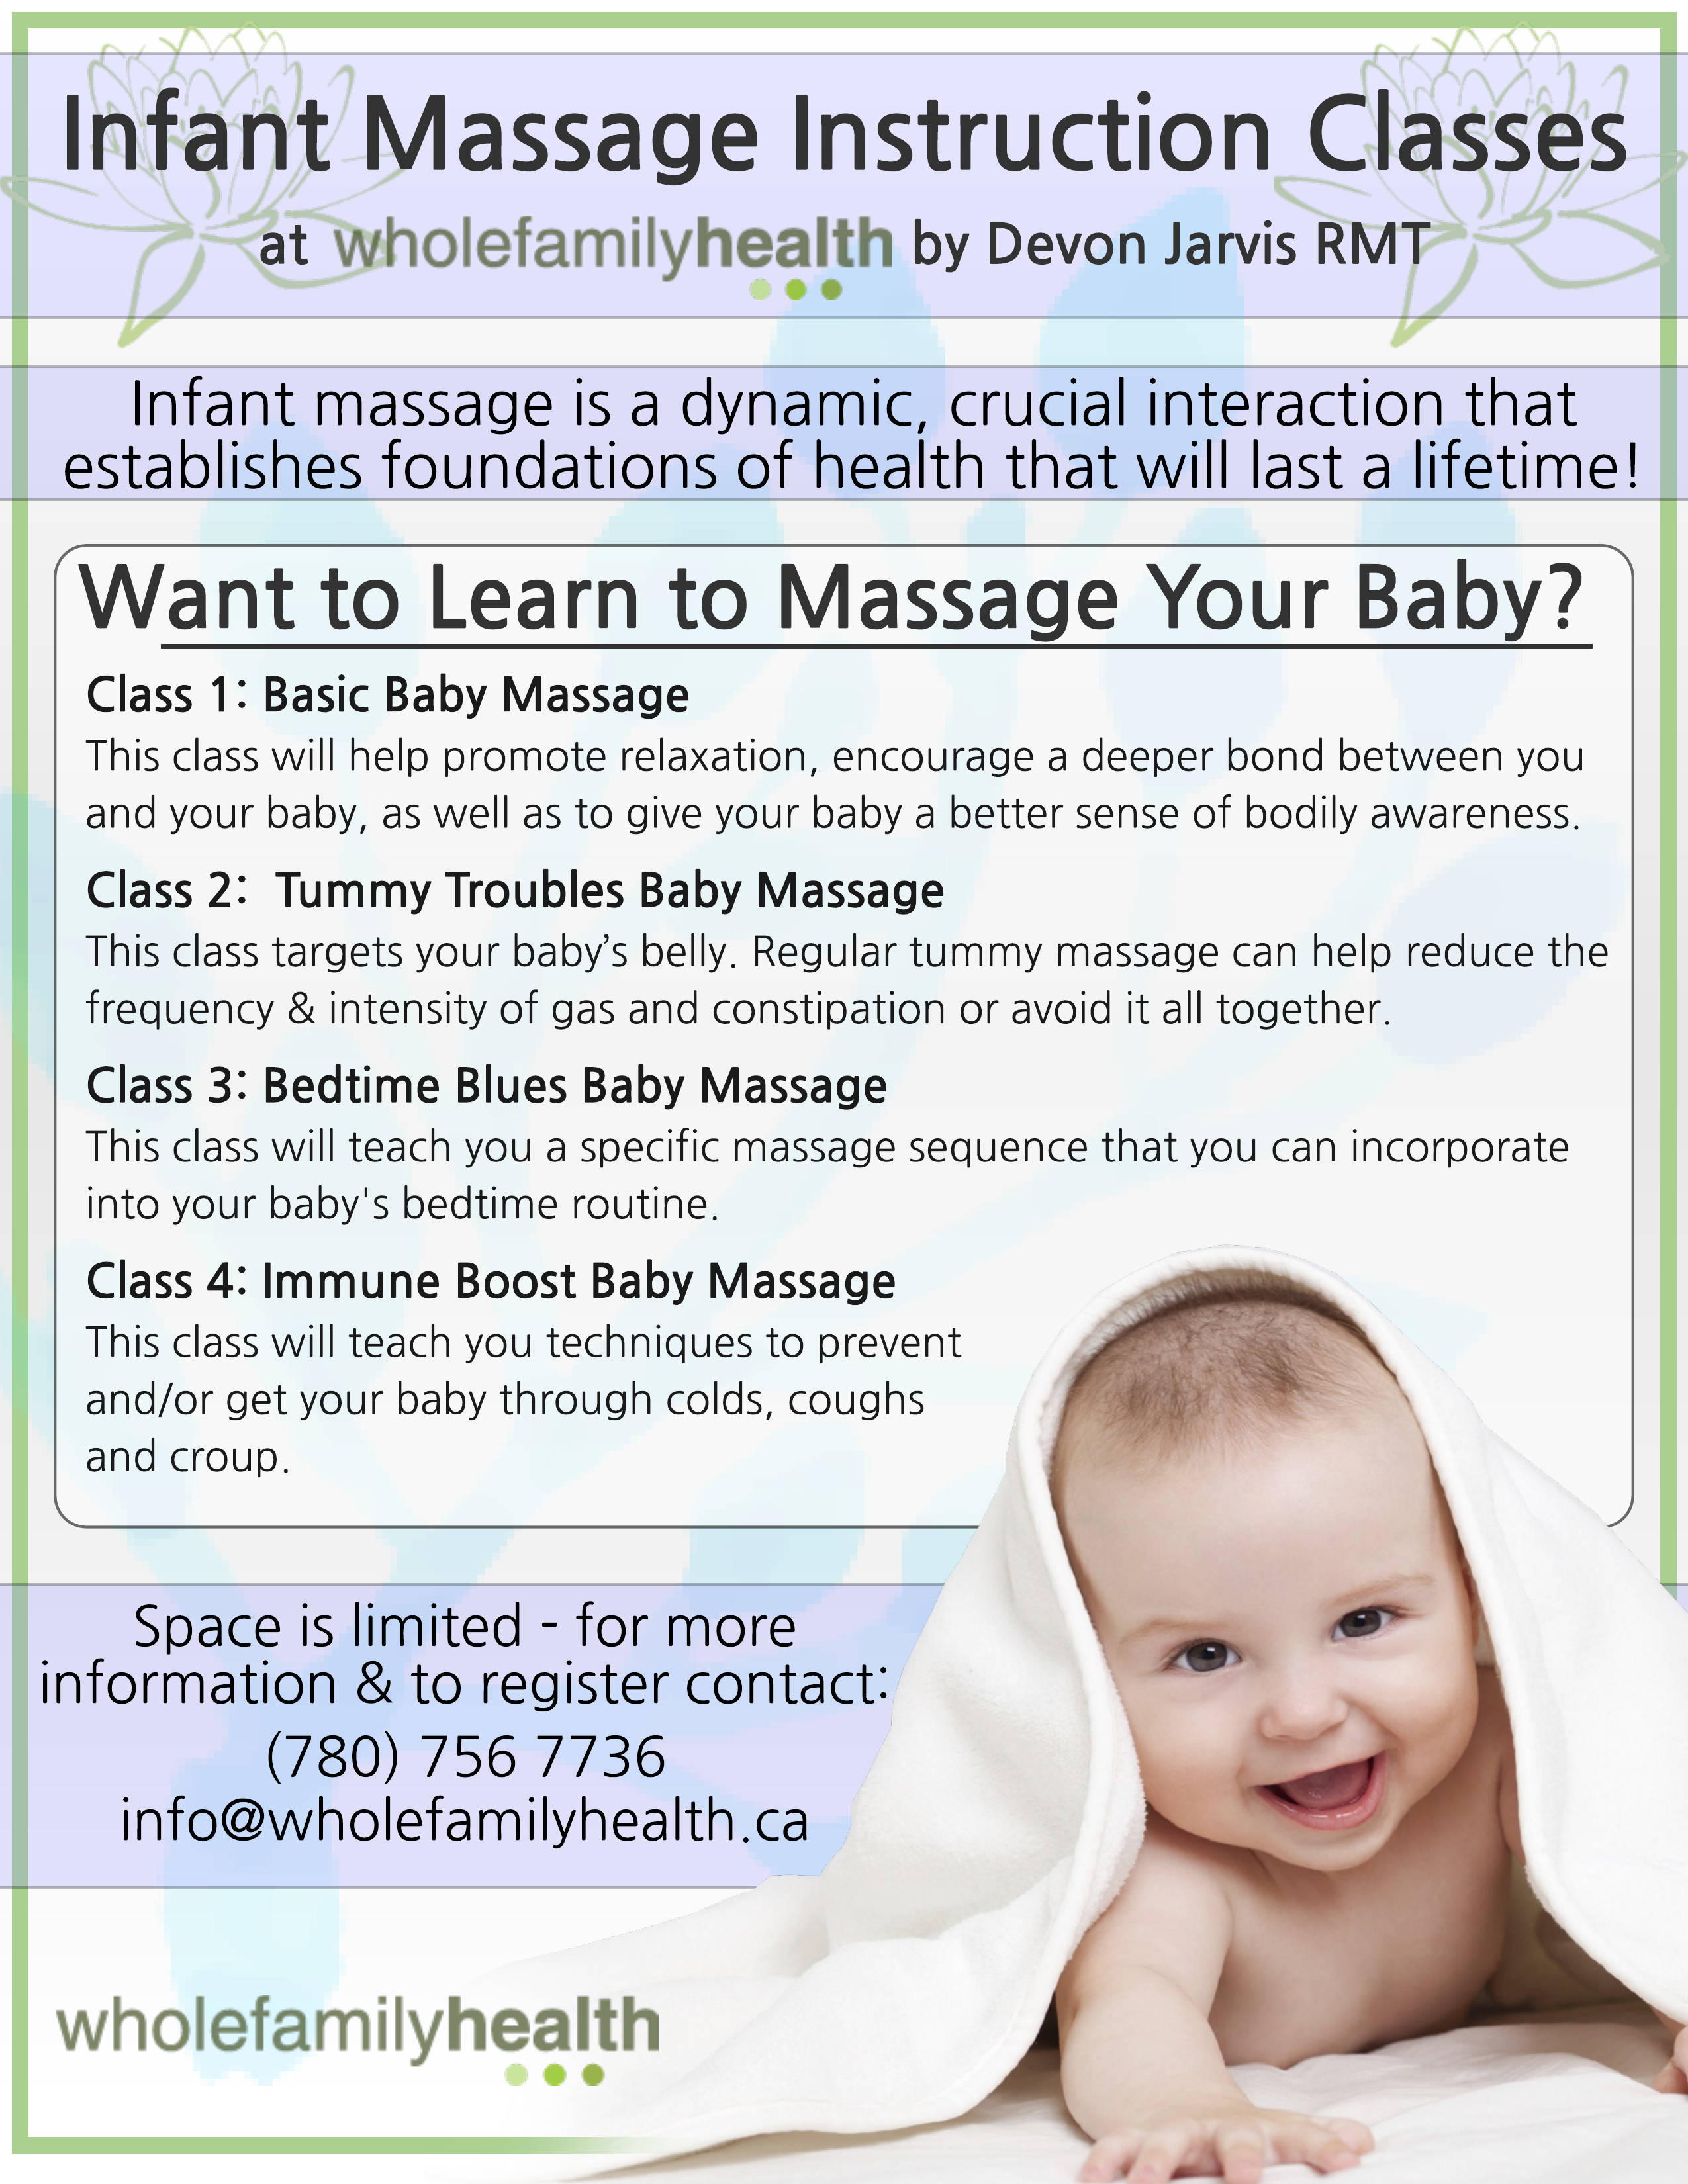 Infant Message Instruction Classes Image